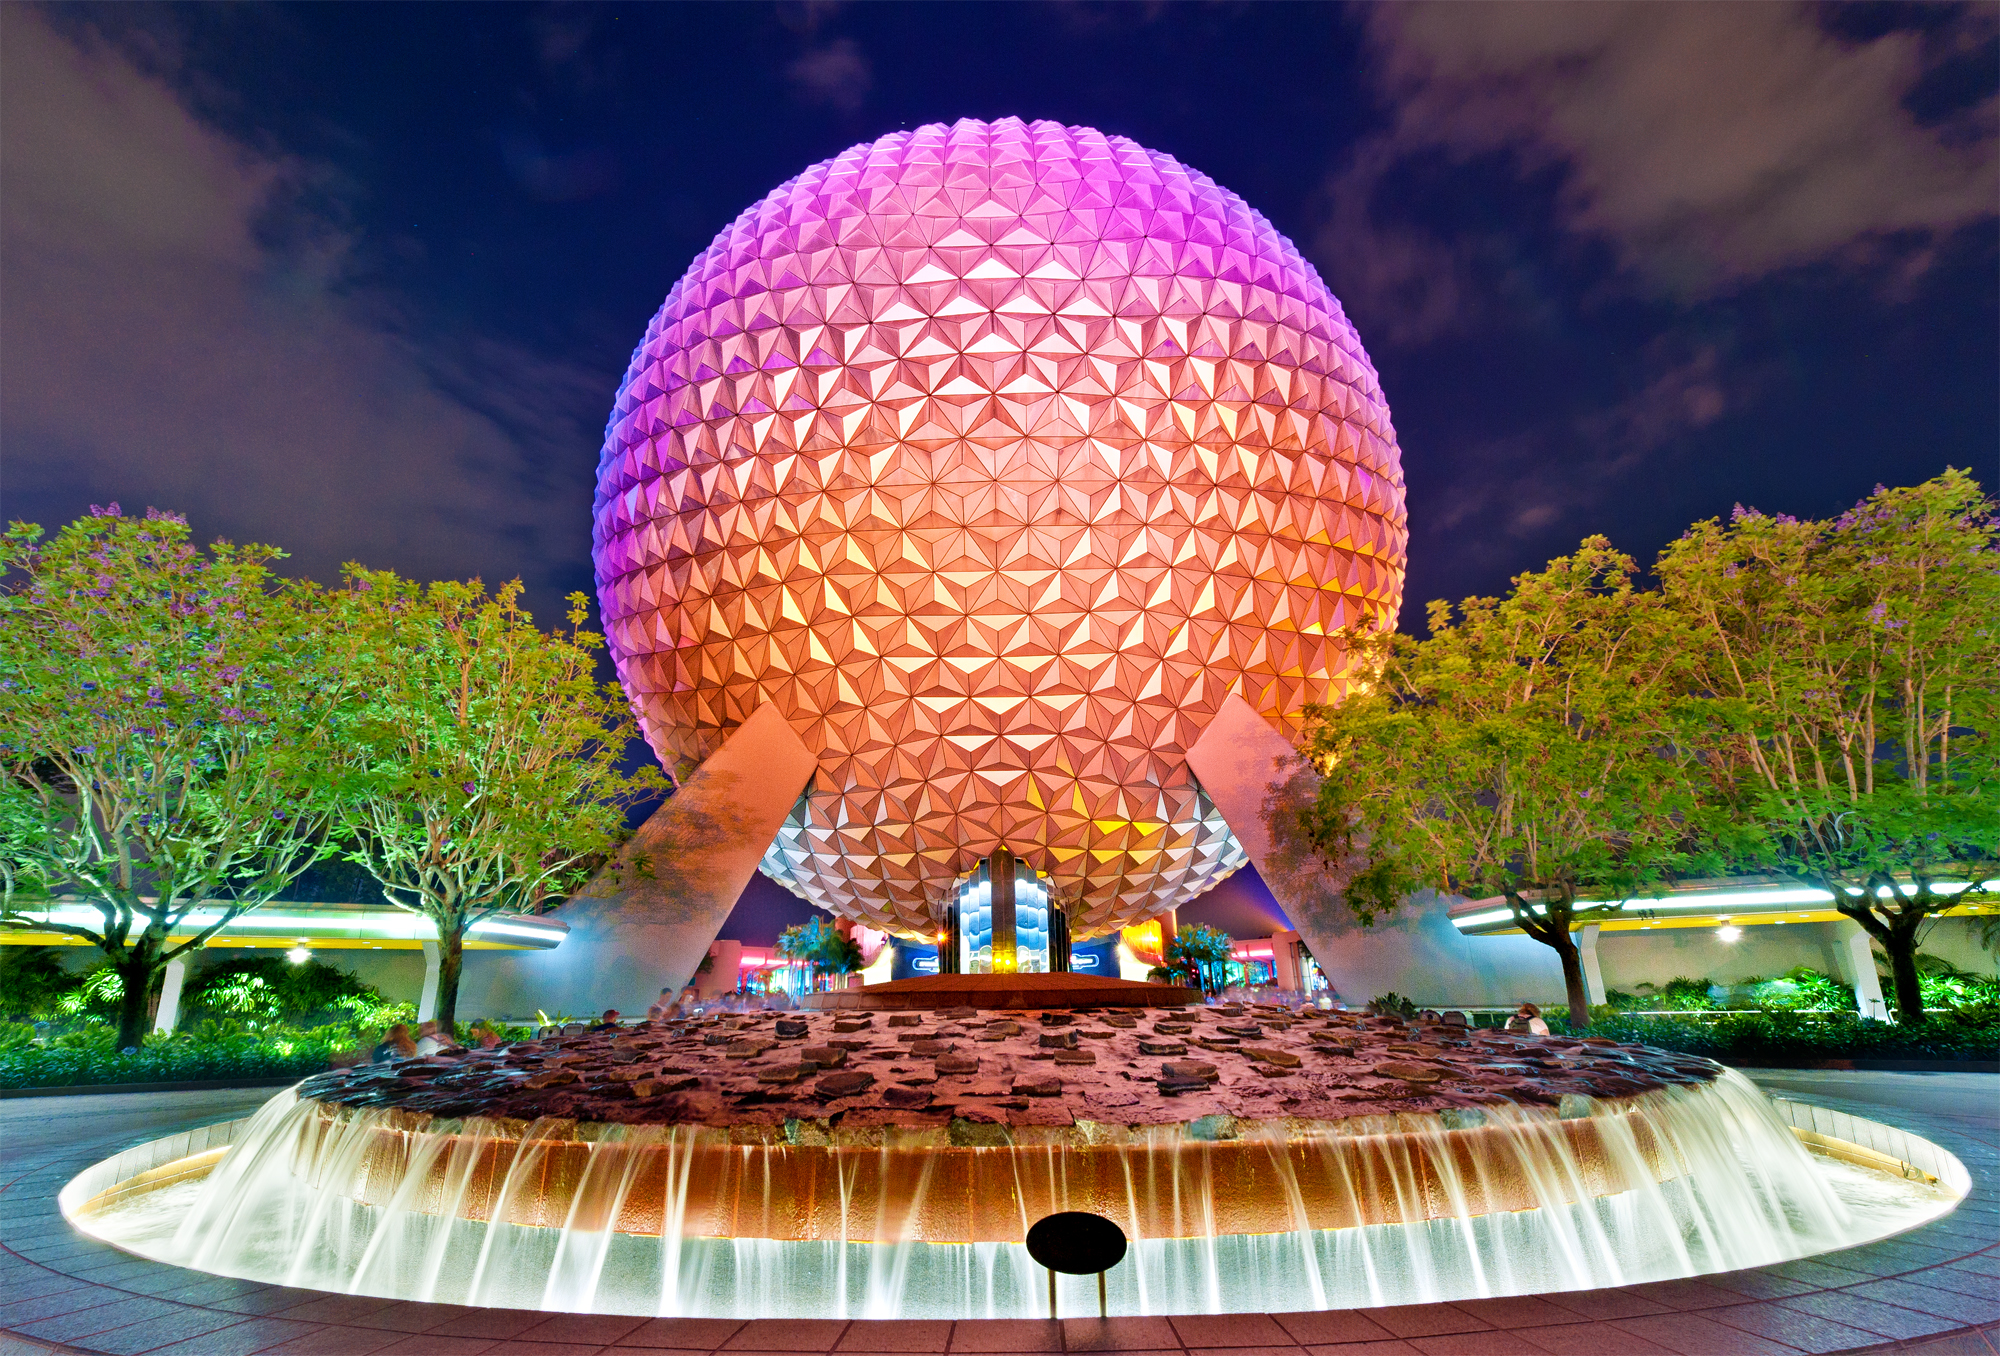 Another Spaceship Earth Night Photo - Disney Tourist Blog